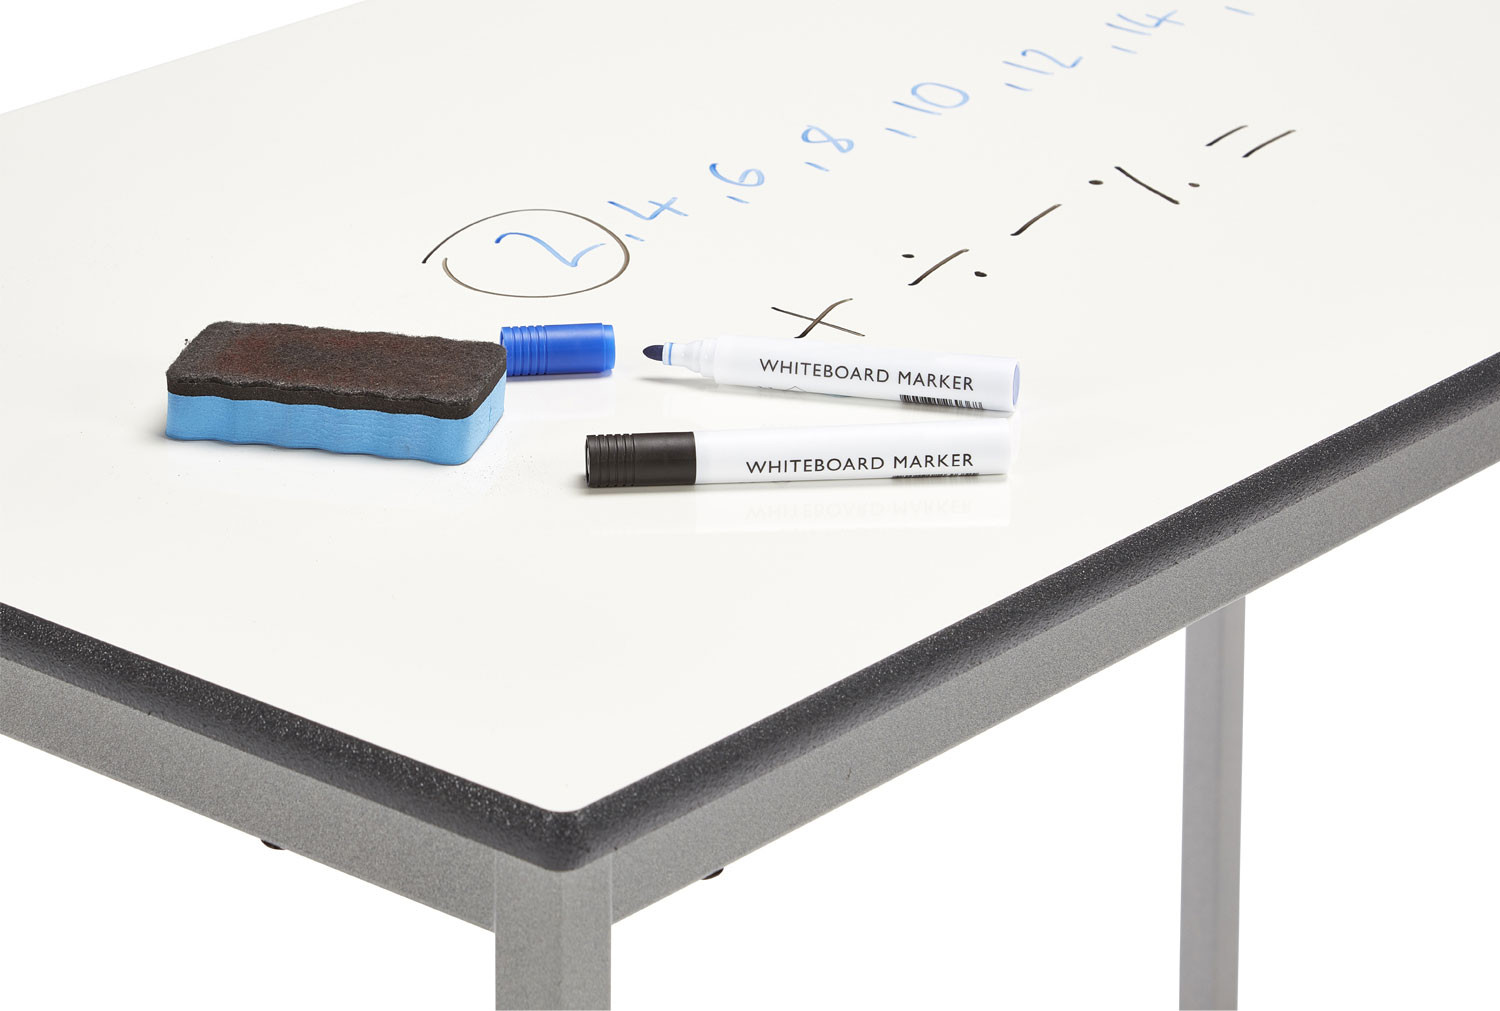 Fully Welded Rectangular Table With Whiteboard Top 11-14 Years